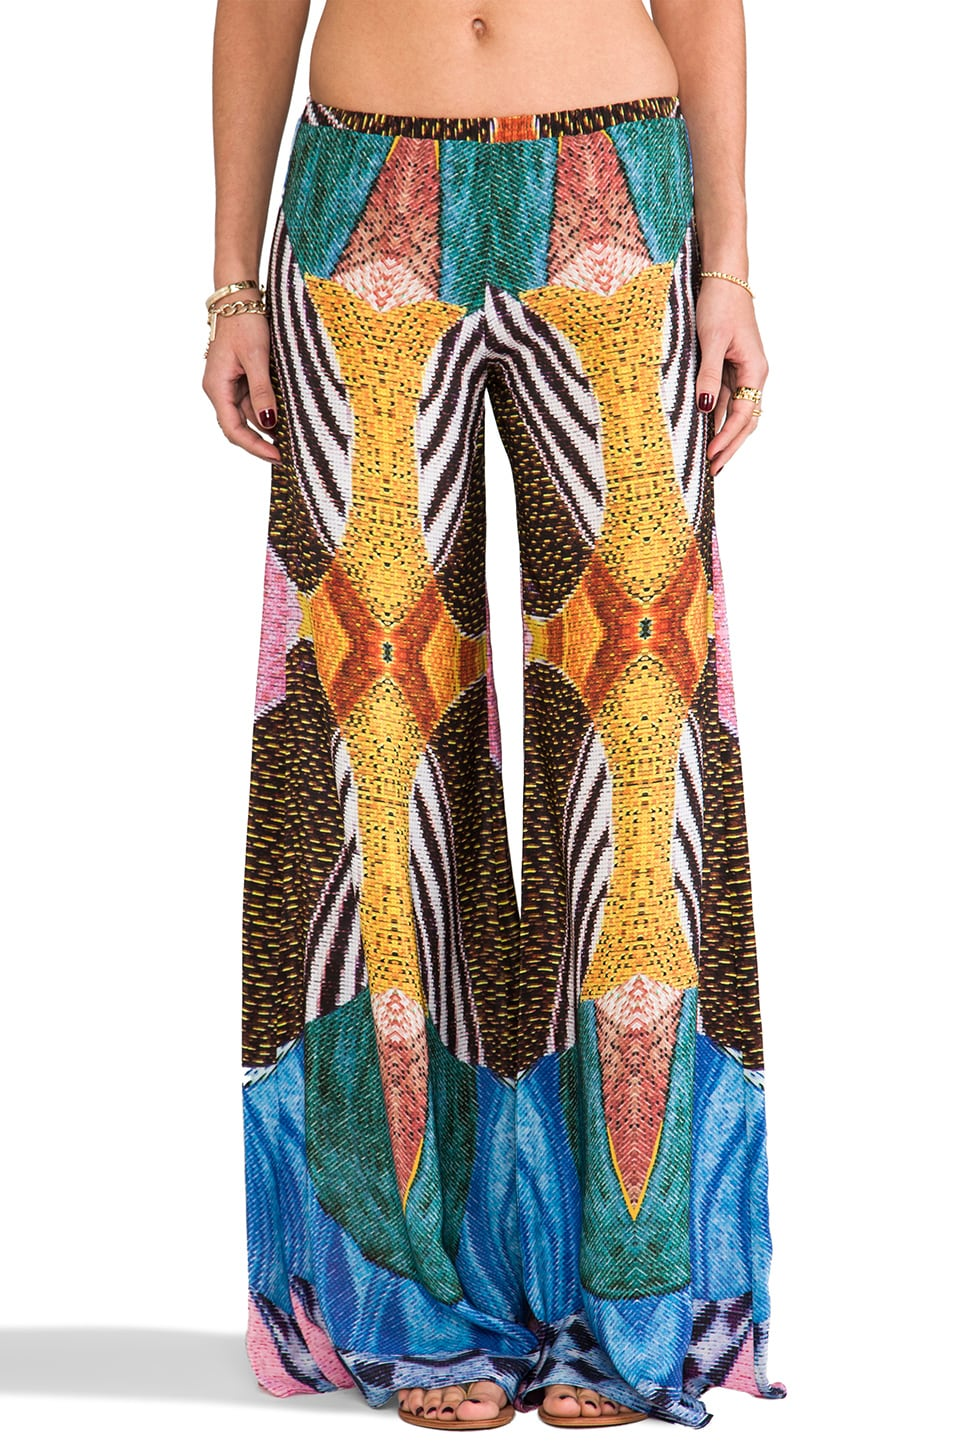 Alexis Austria Pants in African Tribal